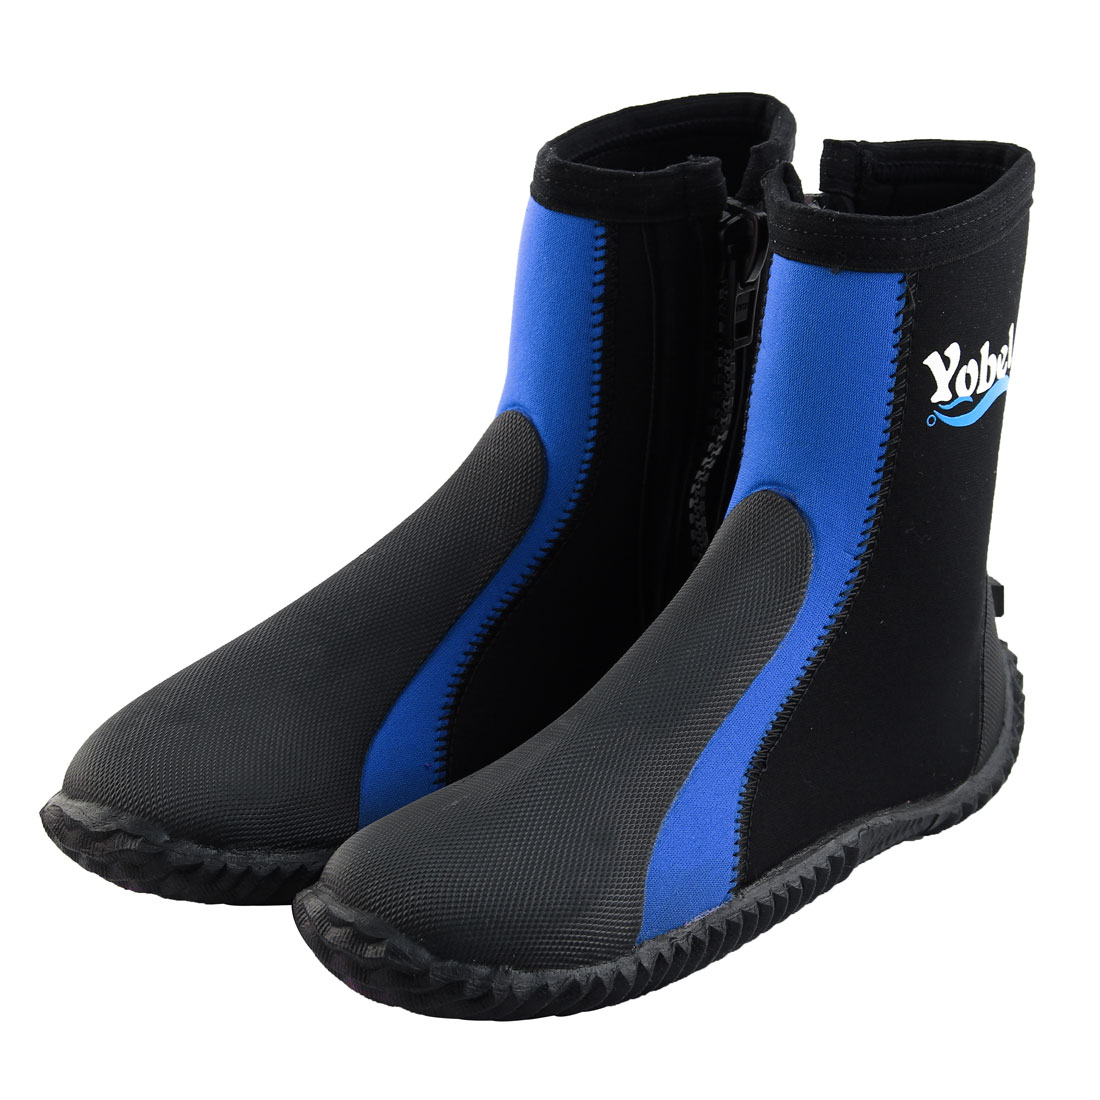 Click here to buy Outdoor Diving Surfing Beach Winter Swimming Anti-slip Wetsuits Water Shoes Boots US 5 Pair Blue.